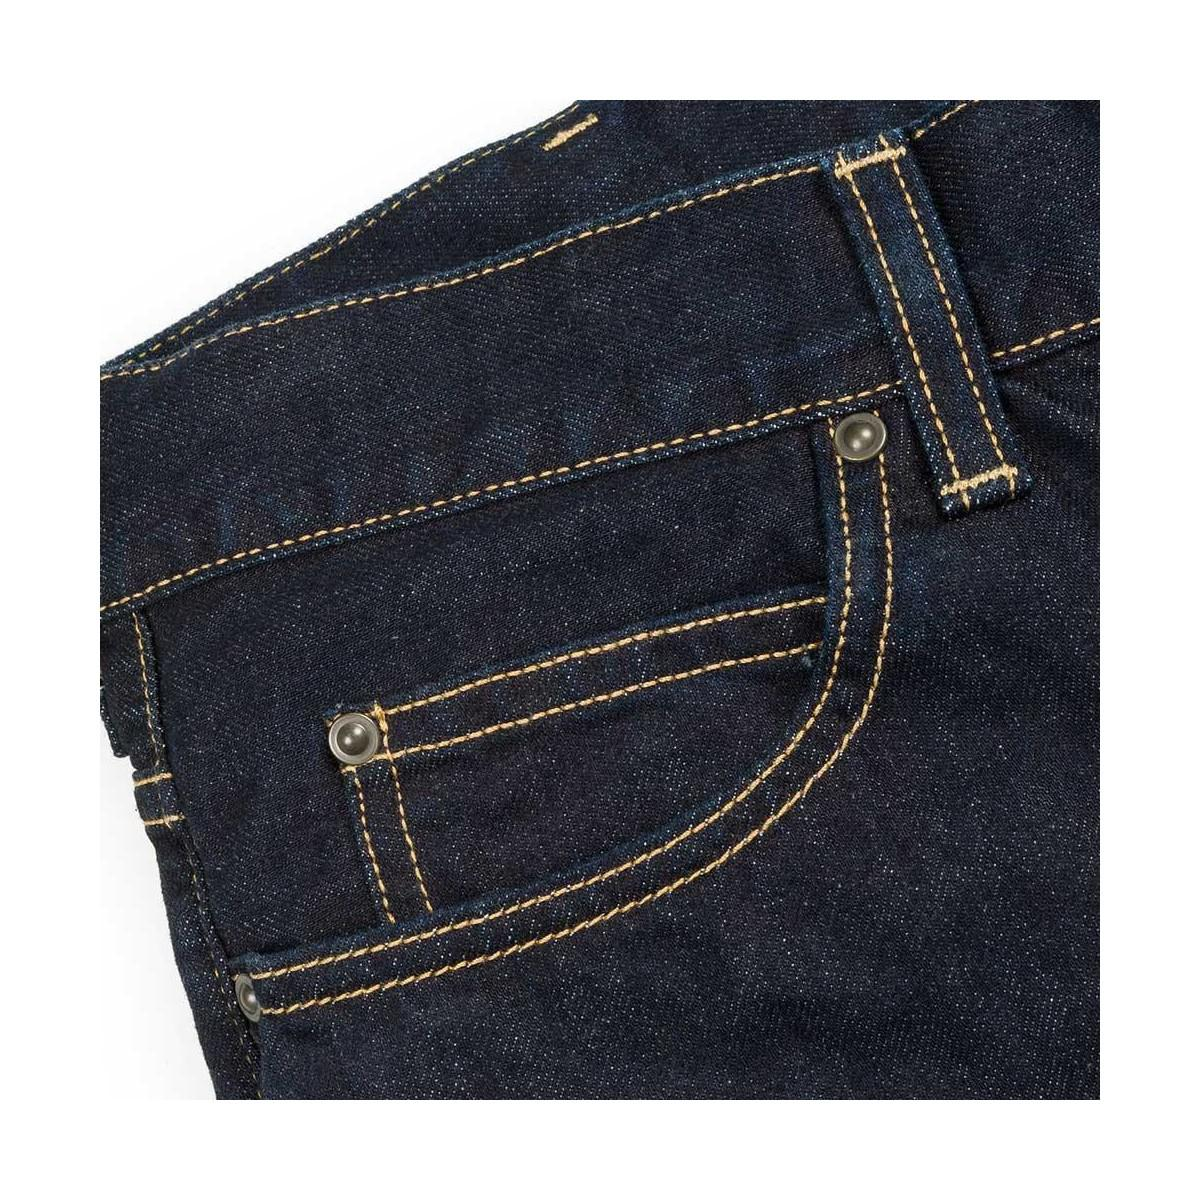 Carhartt Denim Marlow Pant Straight Fit Jeans Men's Jeans In Pink for Men